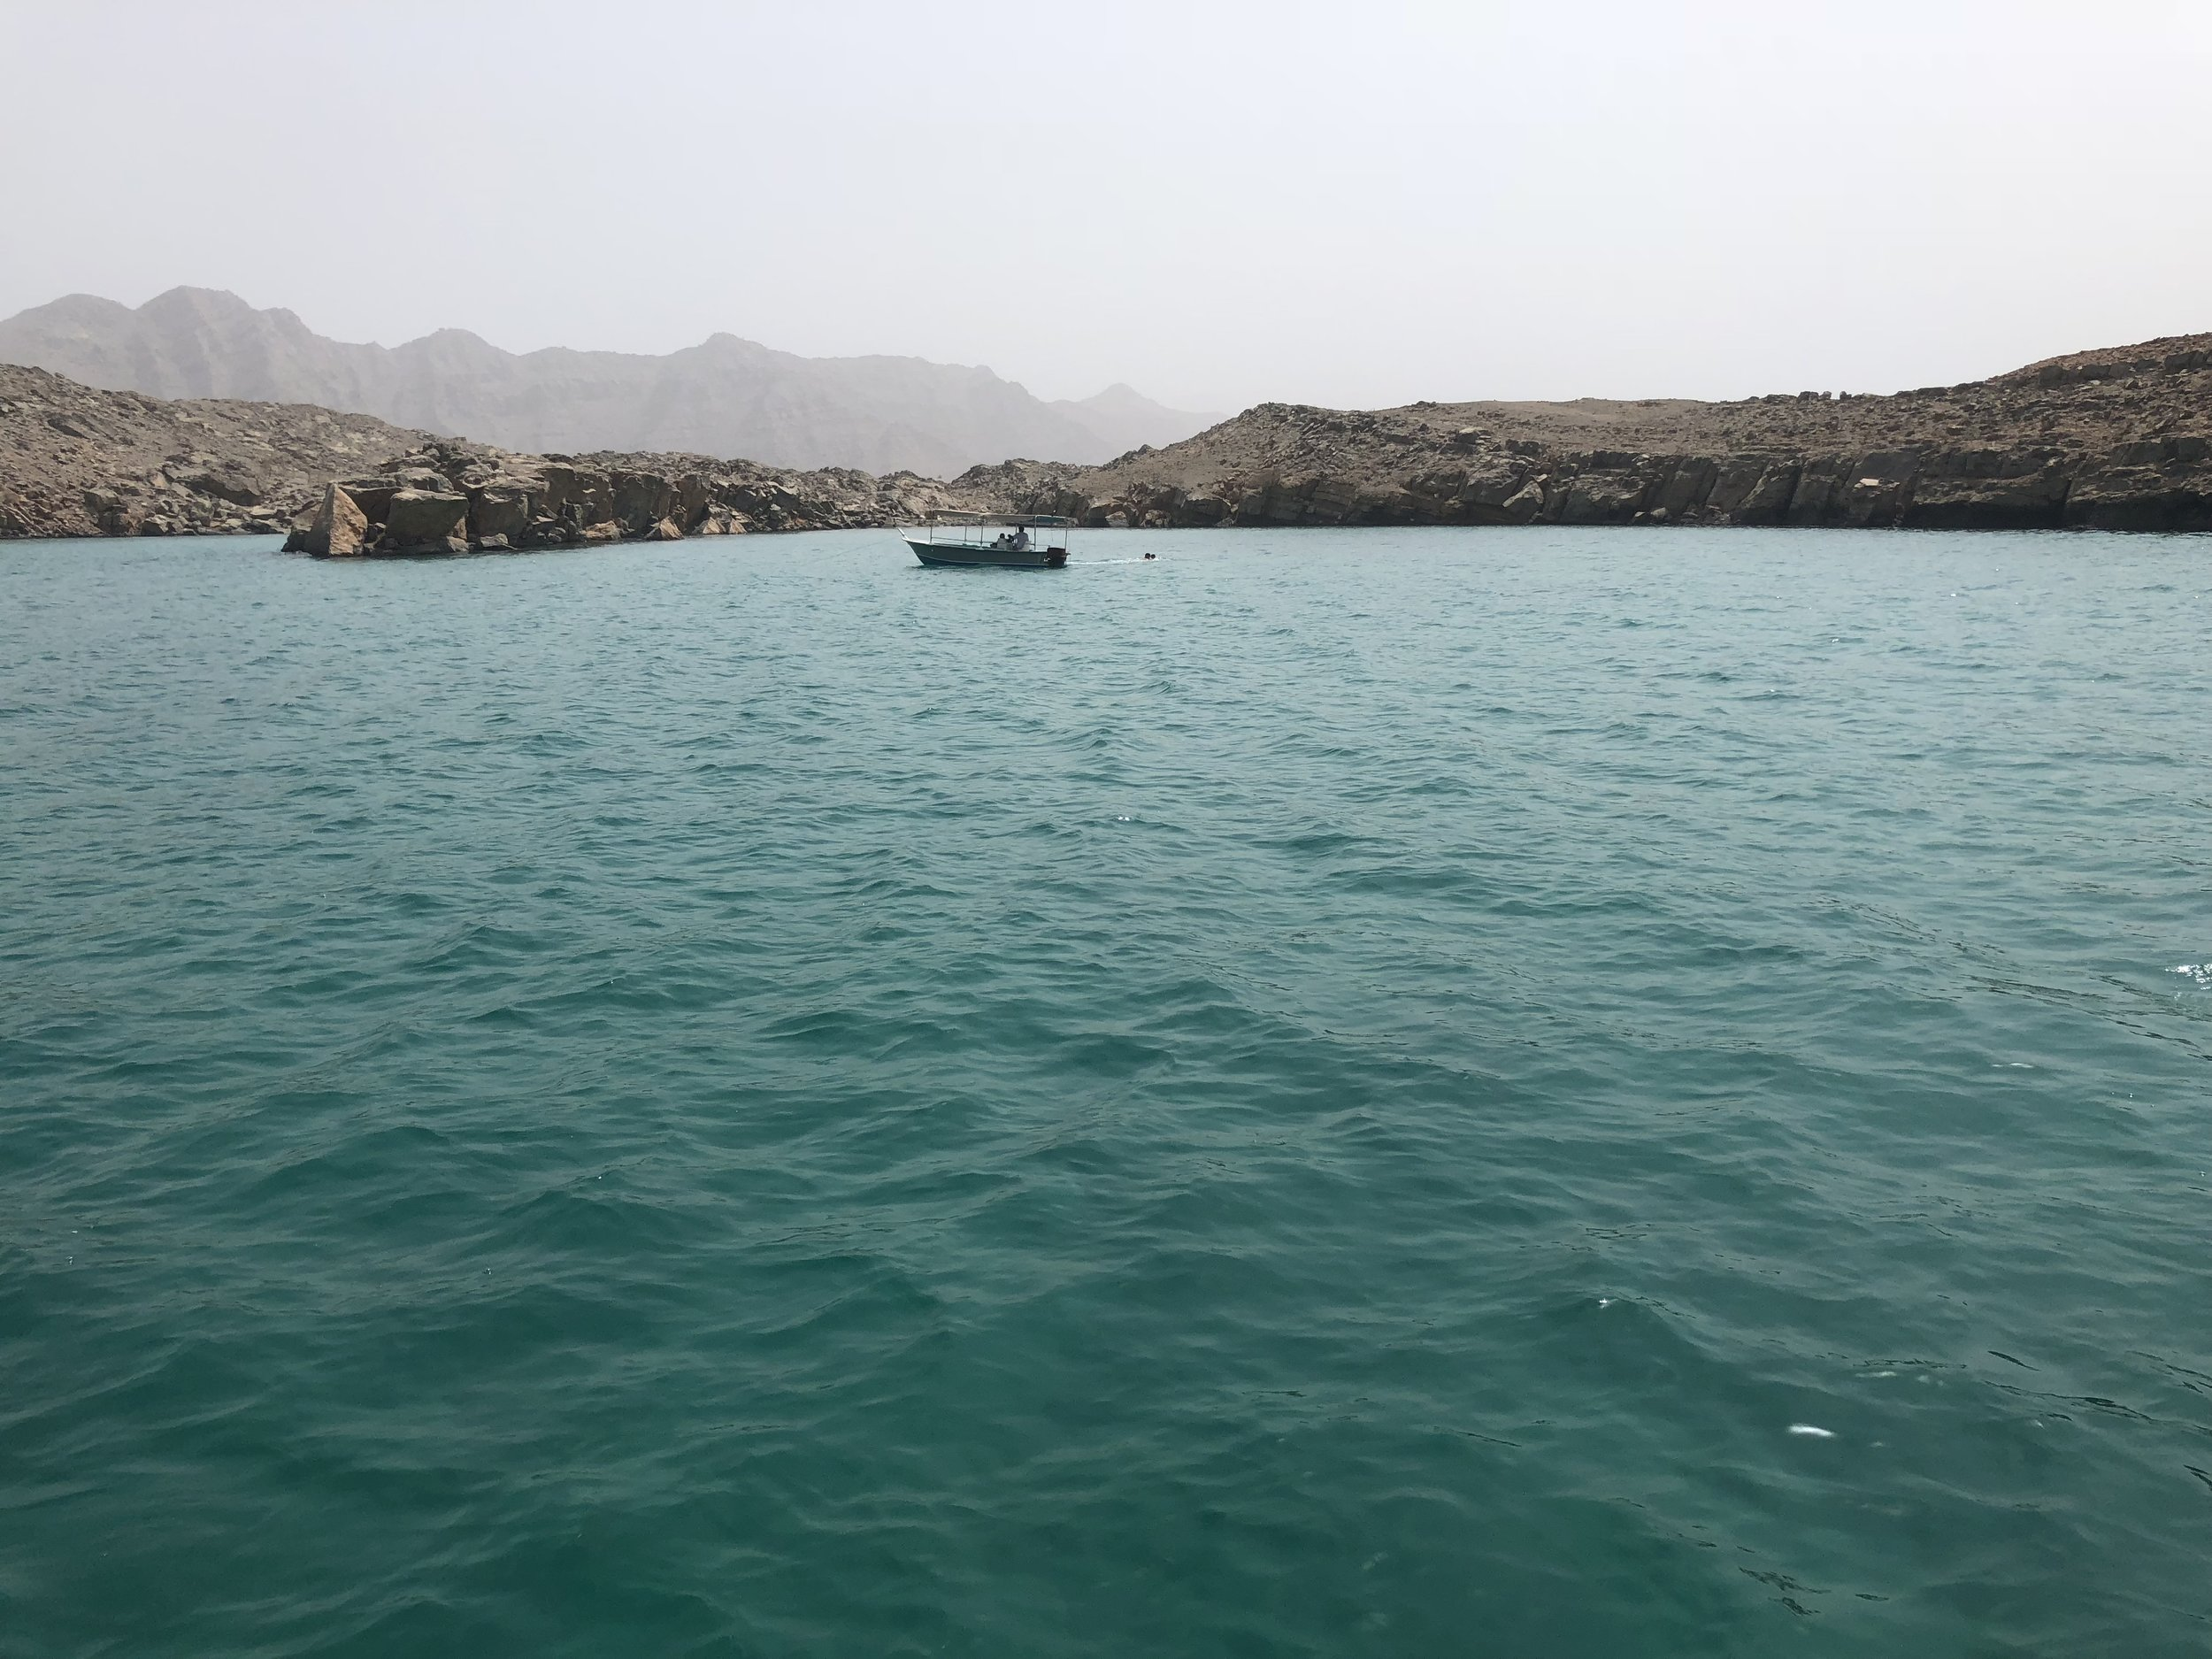 Fjords of Oman